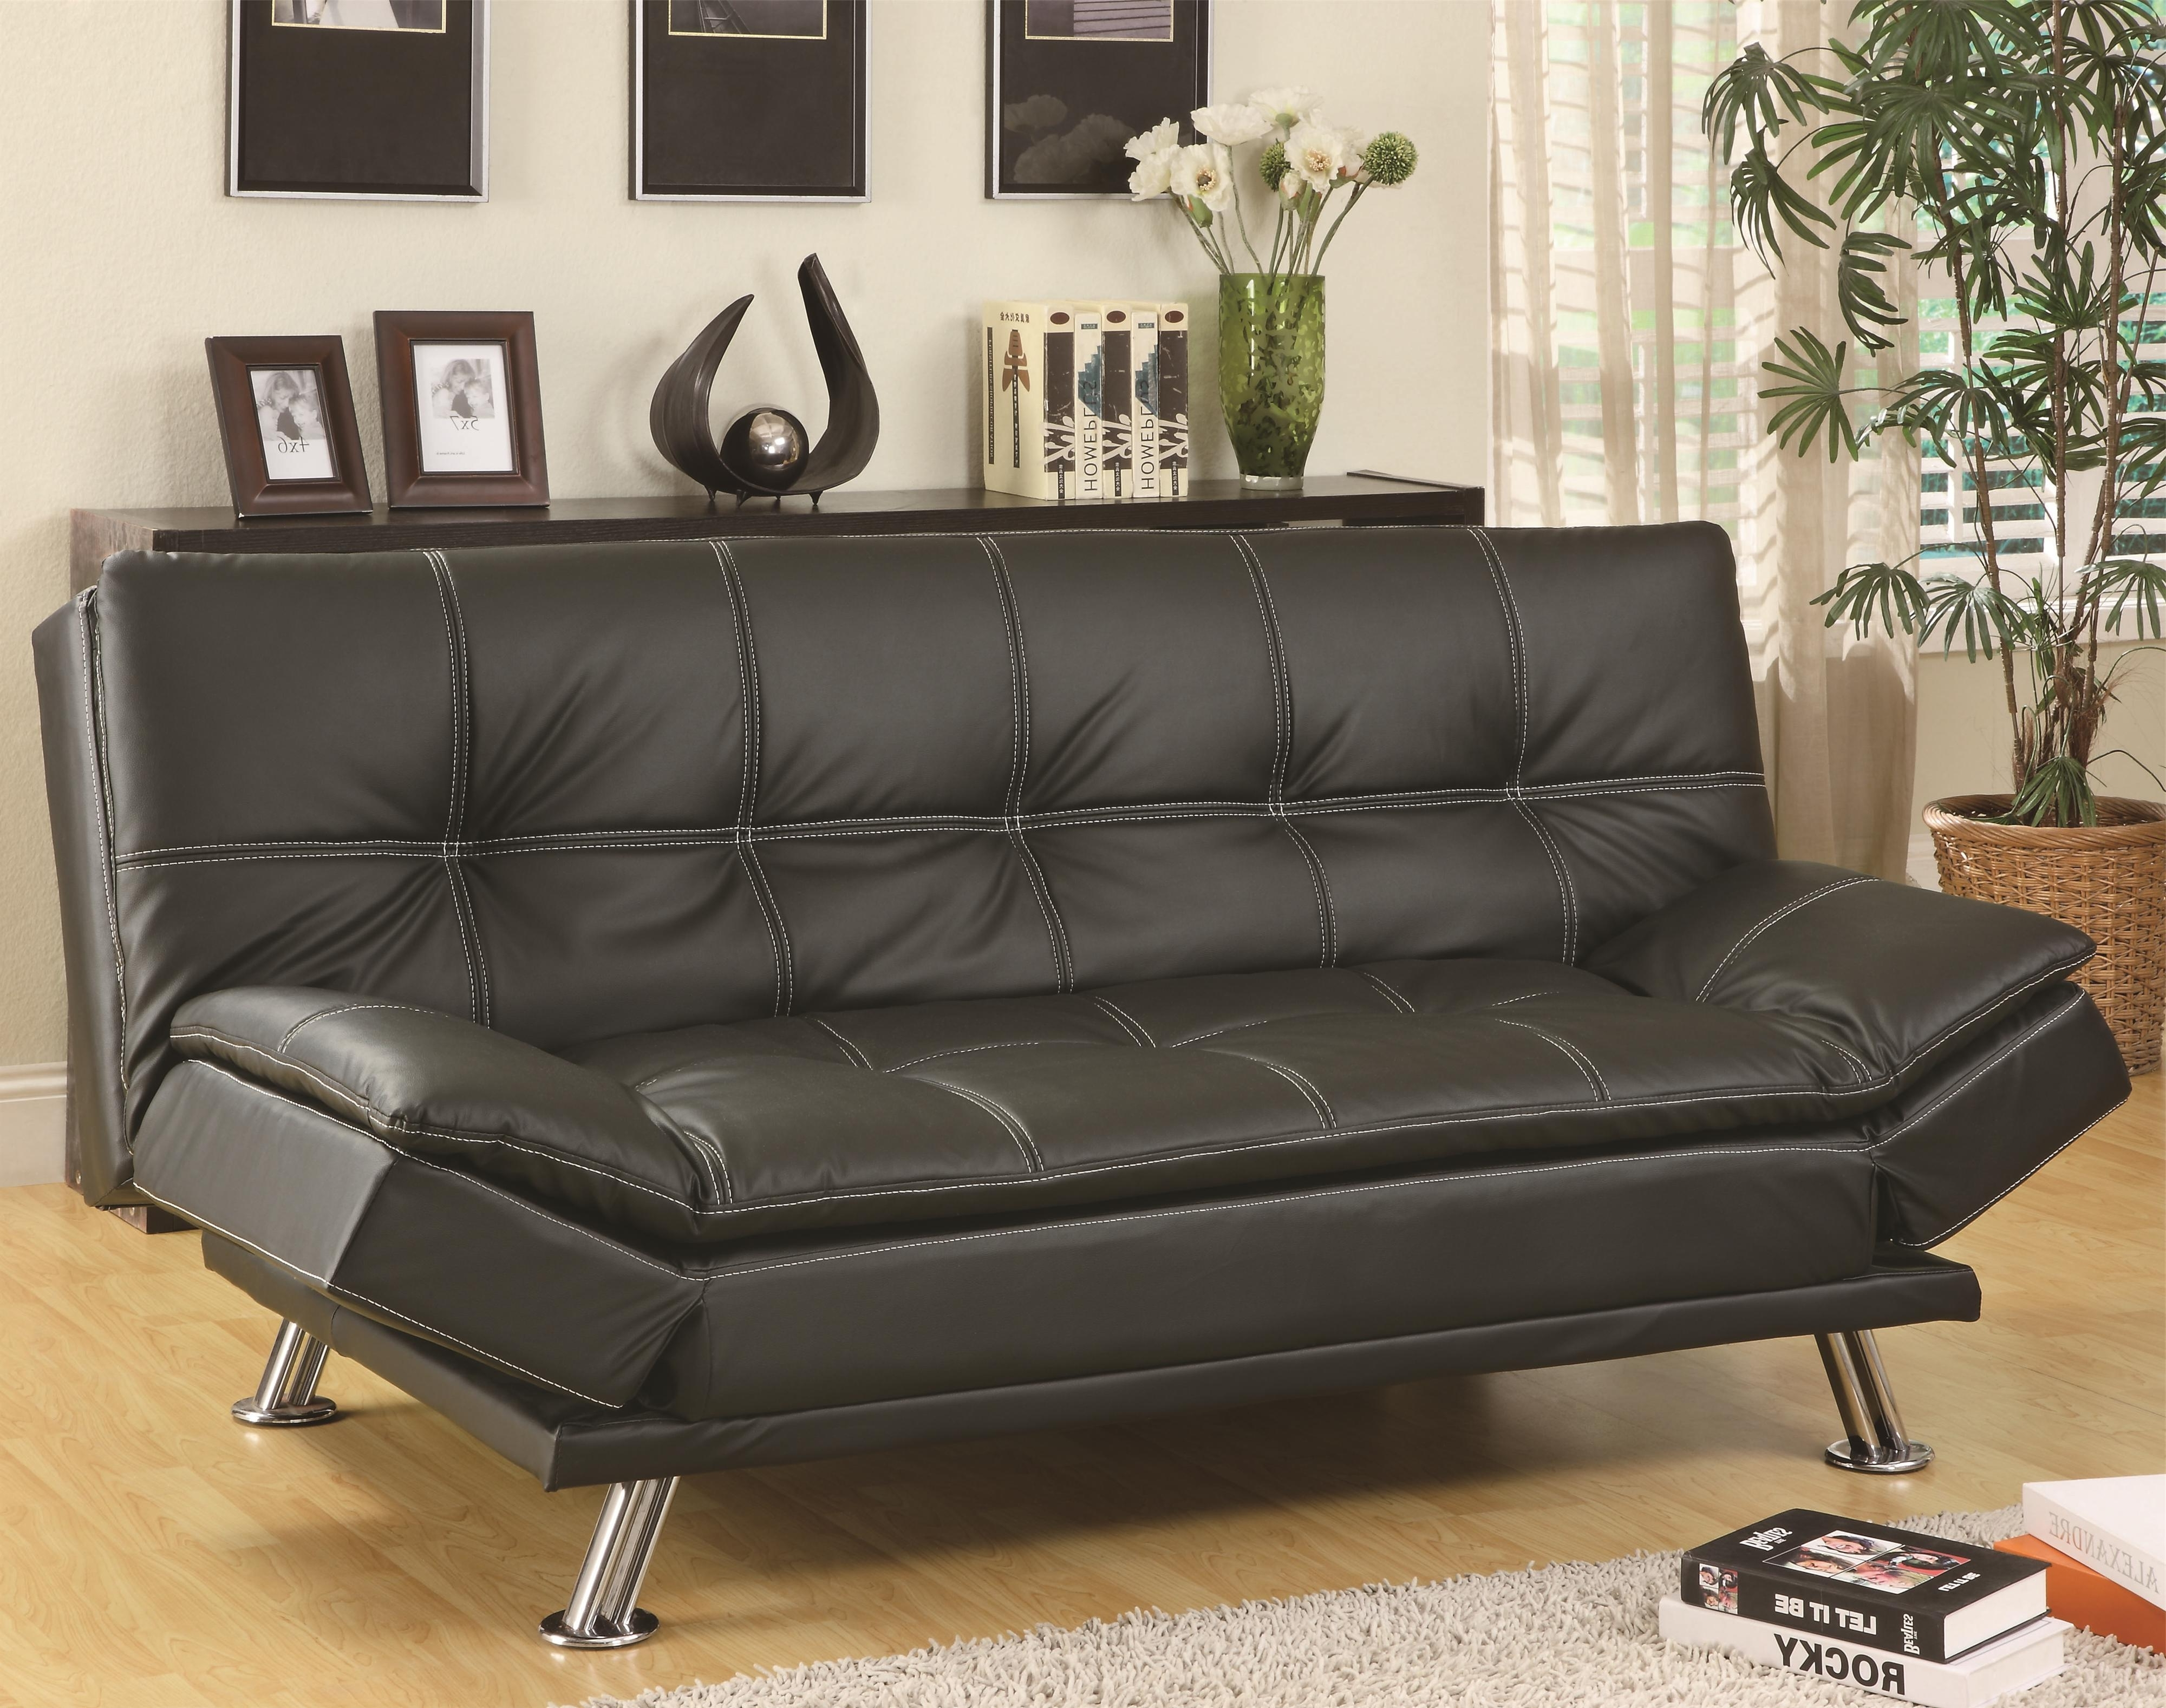 Most Recent Tallahassee Sectional Sofas With Furniture: Cheap Sectional Sofa (View 10 of 15)